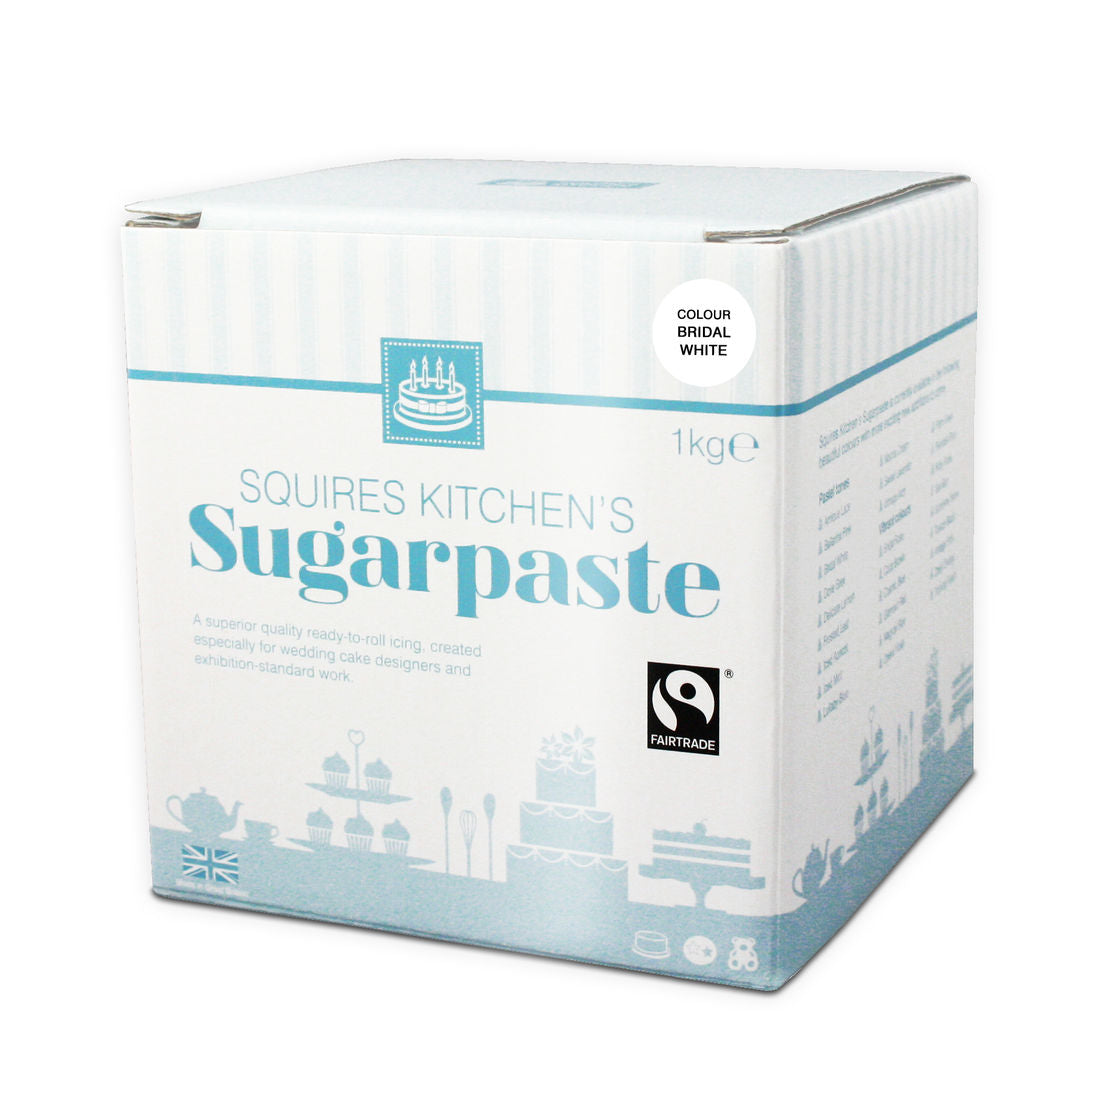 Sugarpaste (Fondant) - Squires Kitchen - Bridal White - 1Kilo